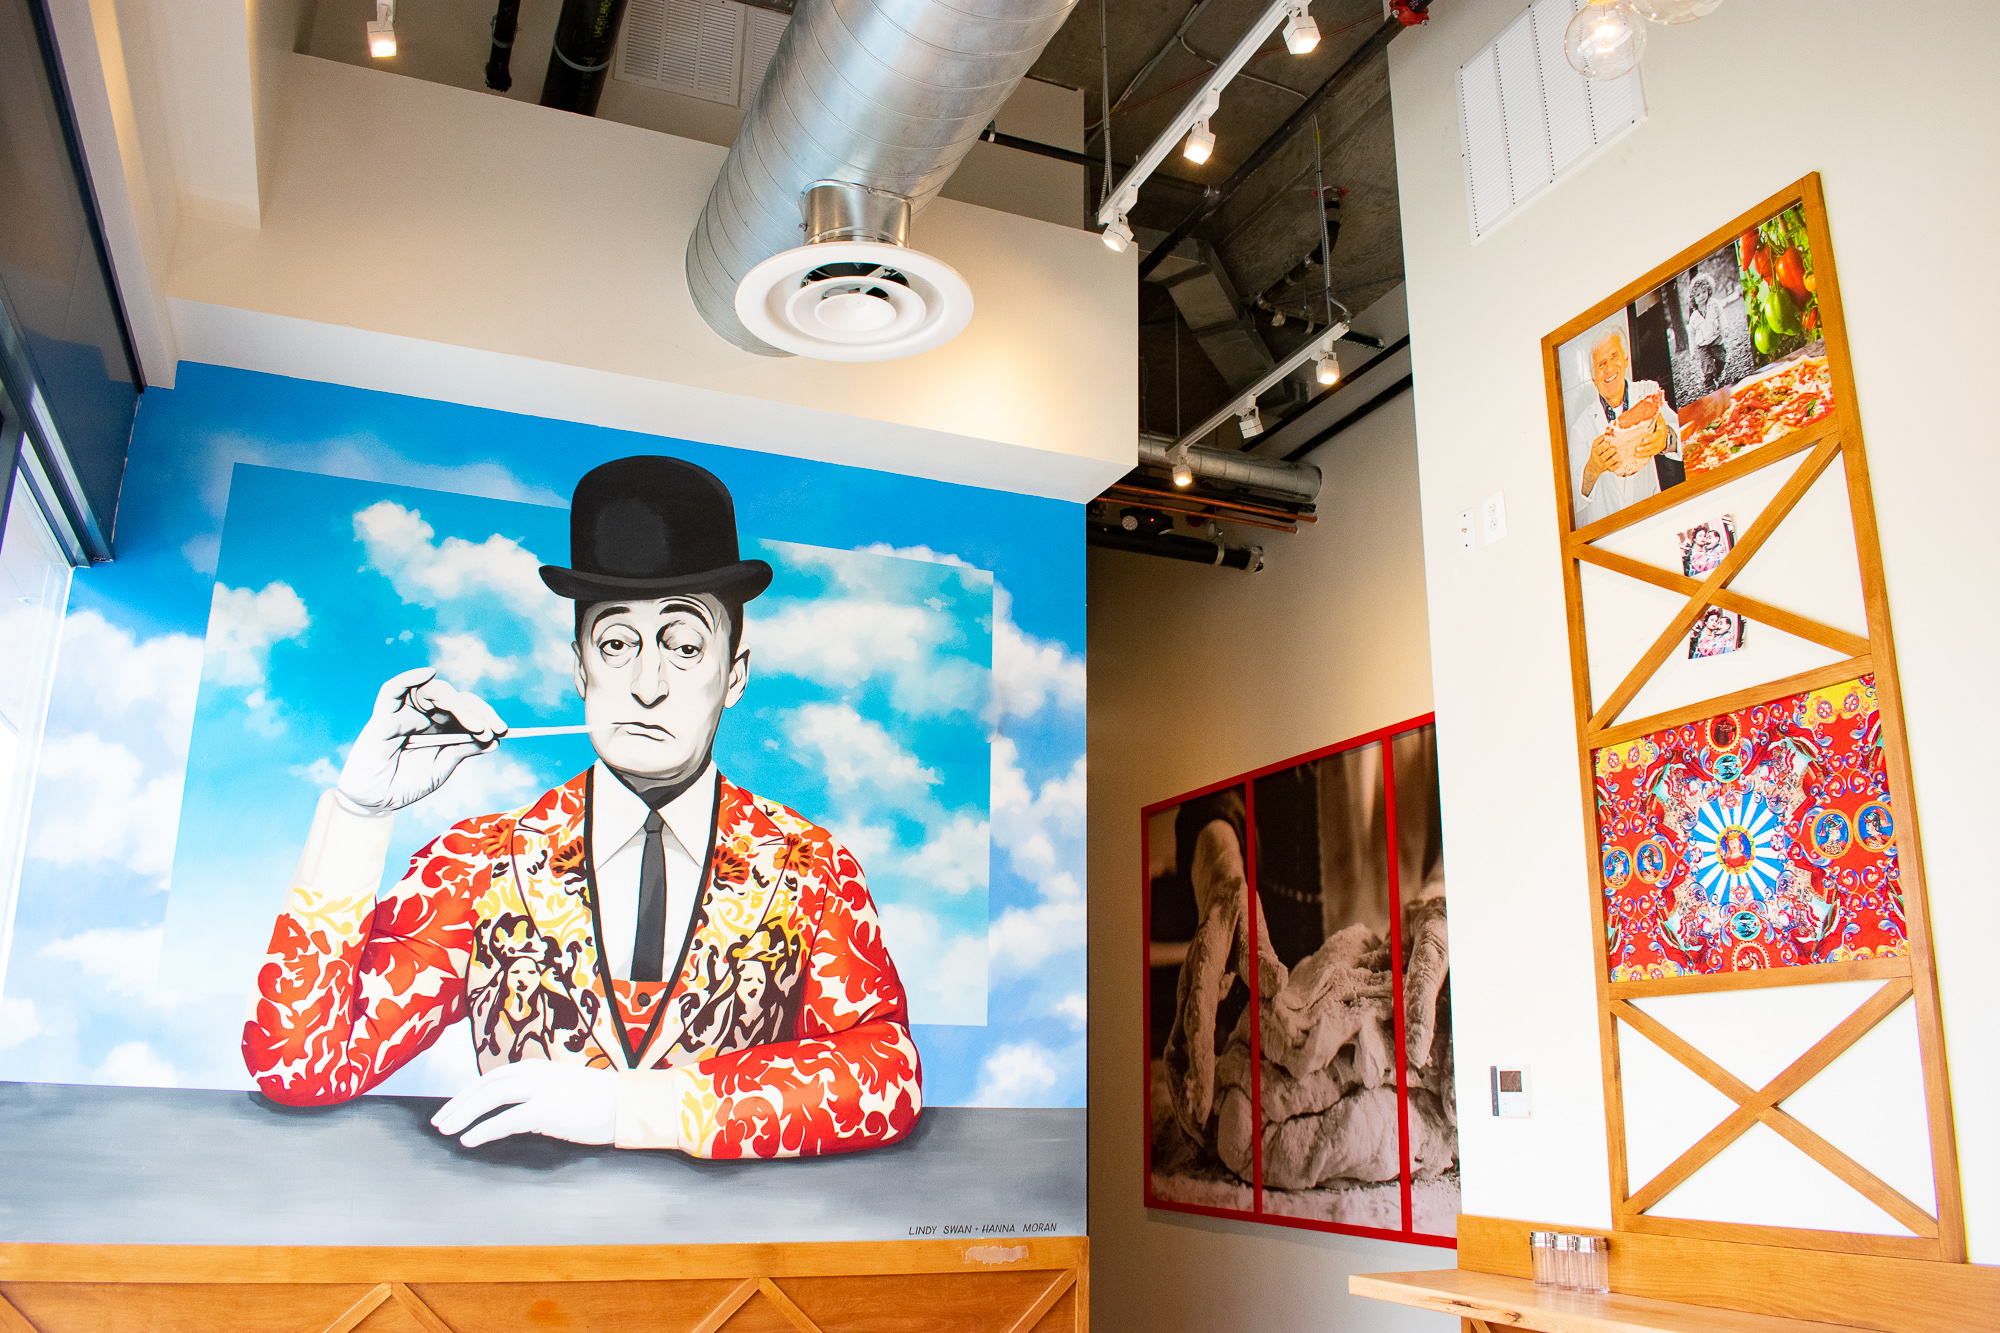 A painting of Italian comedian Totò in a Dolce & Gabbana jacket adorns the wall. Photograph by Meaghan Webster.